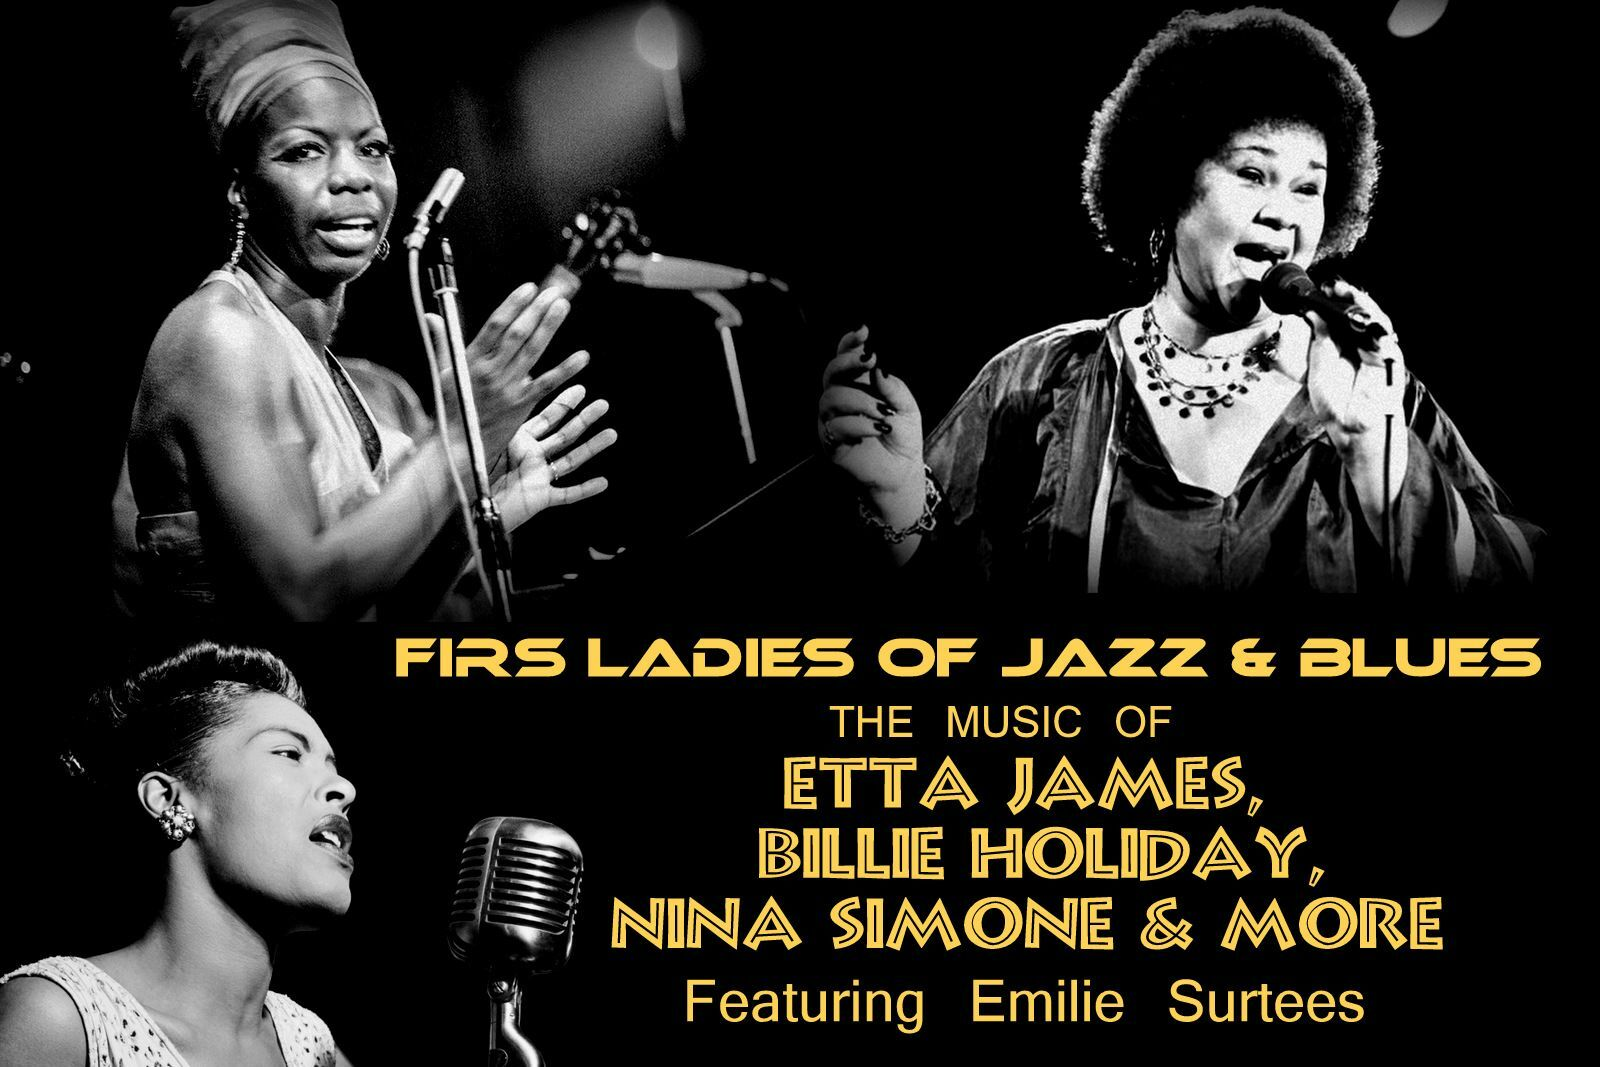 Celebrate the First Ladies of Jazz & Blues